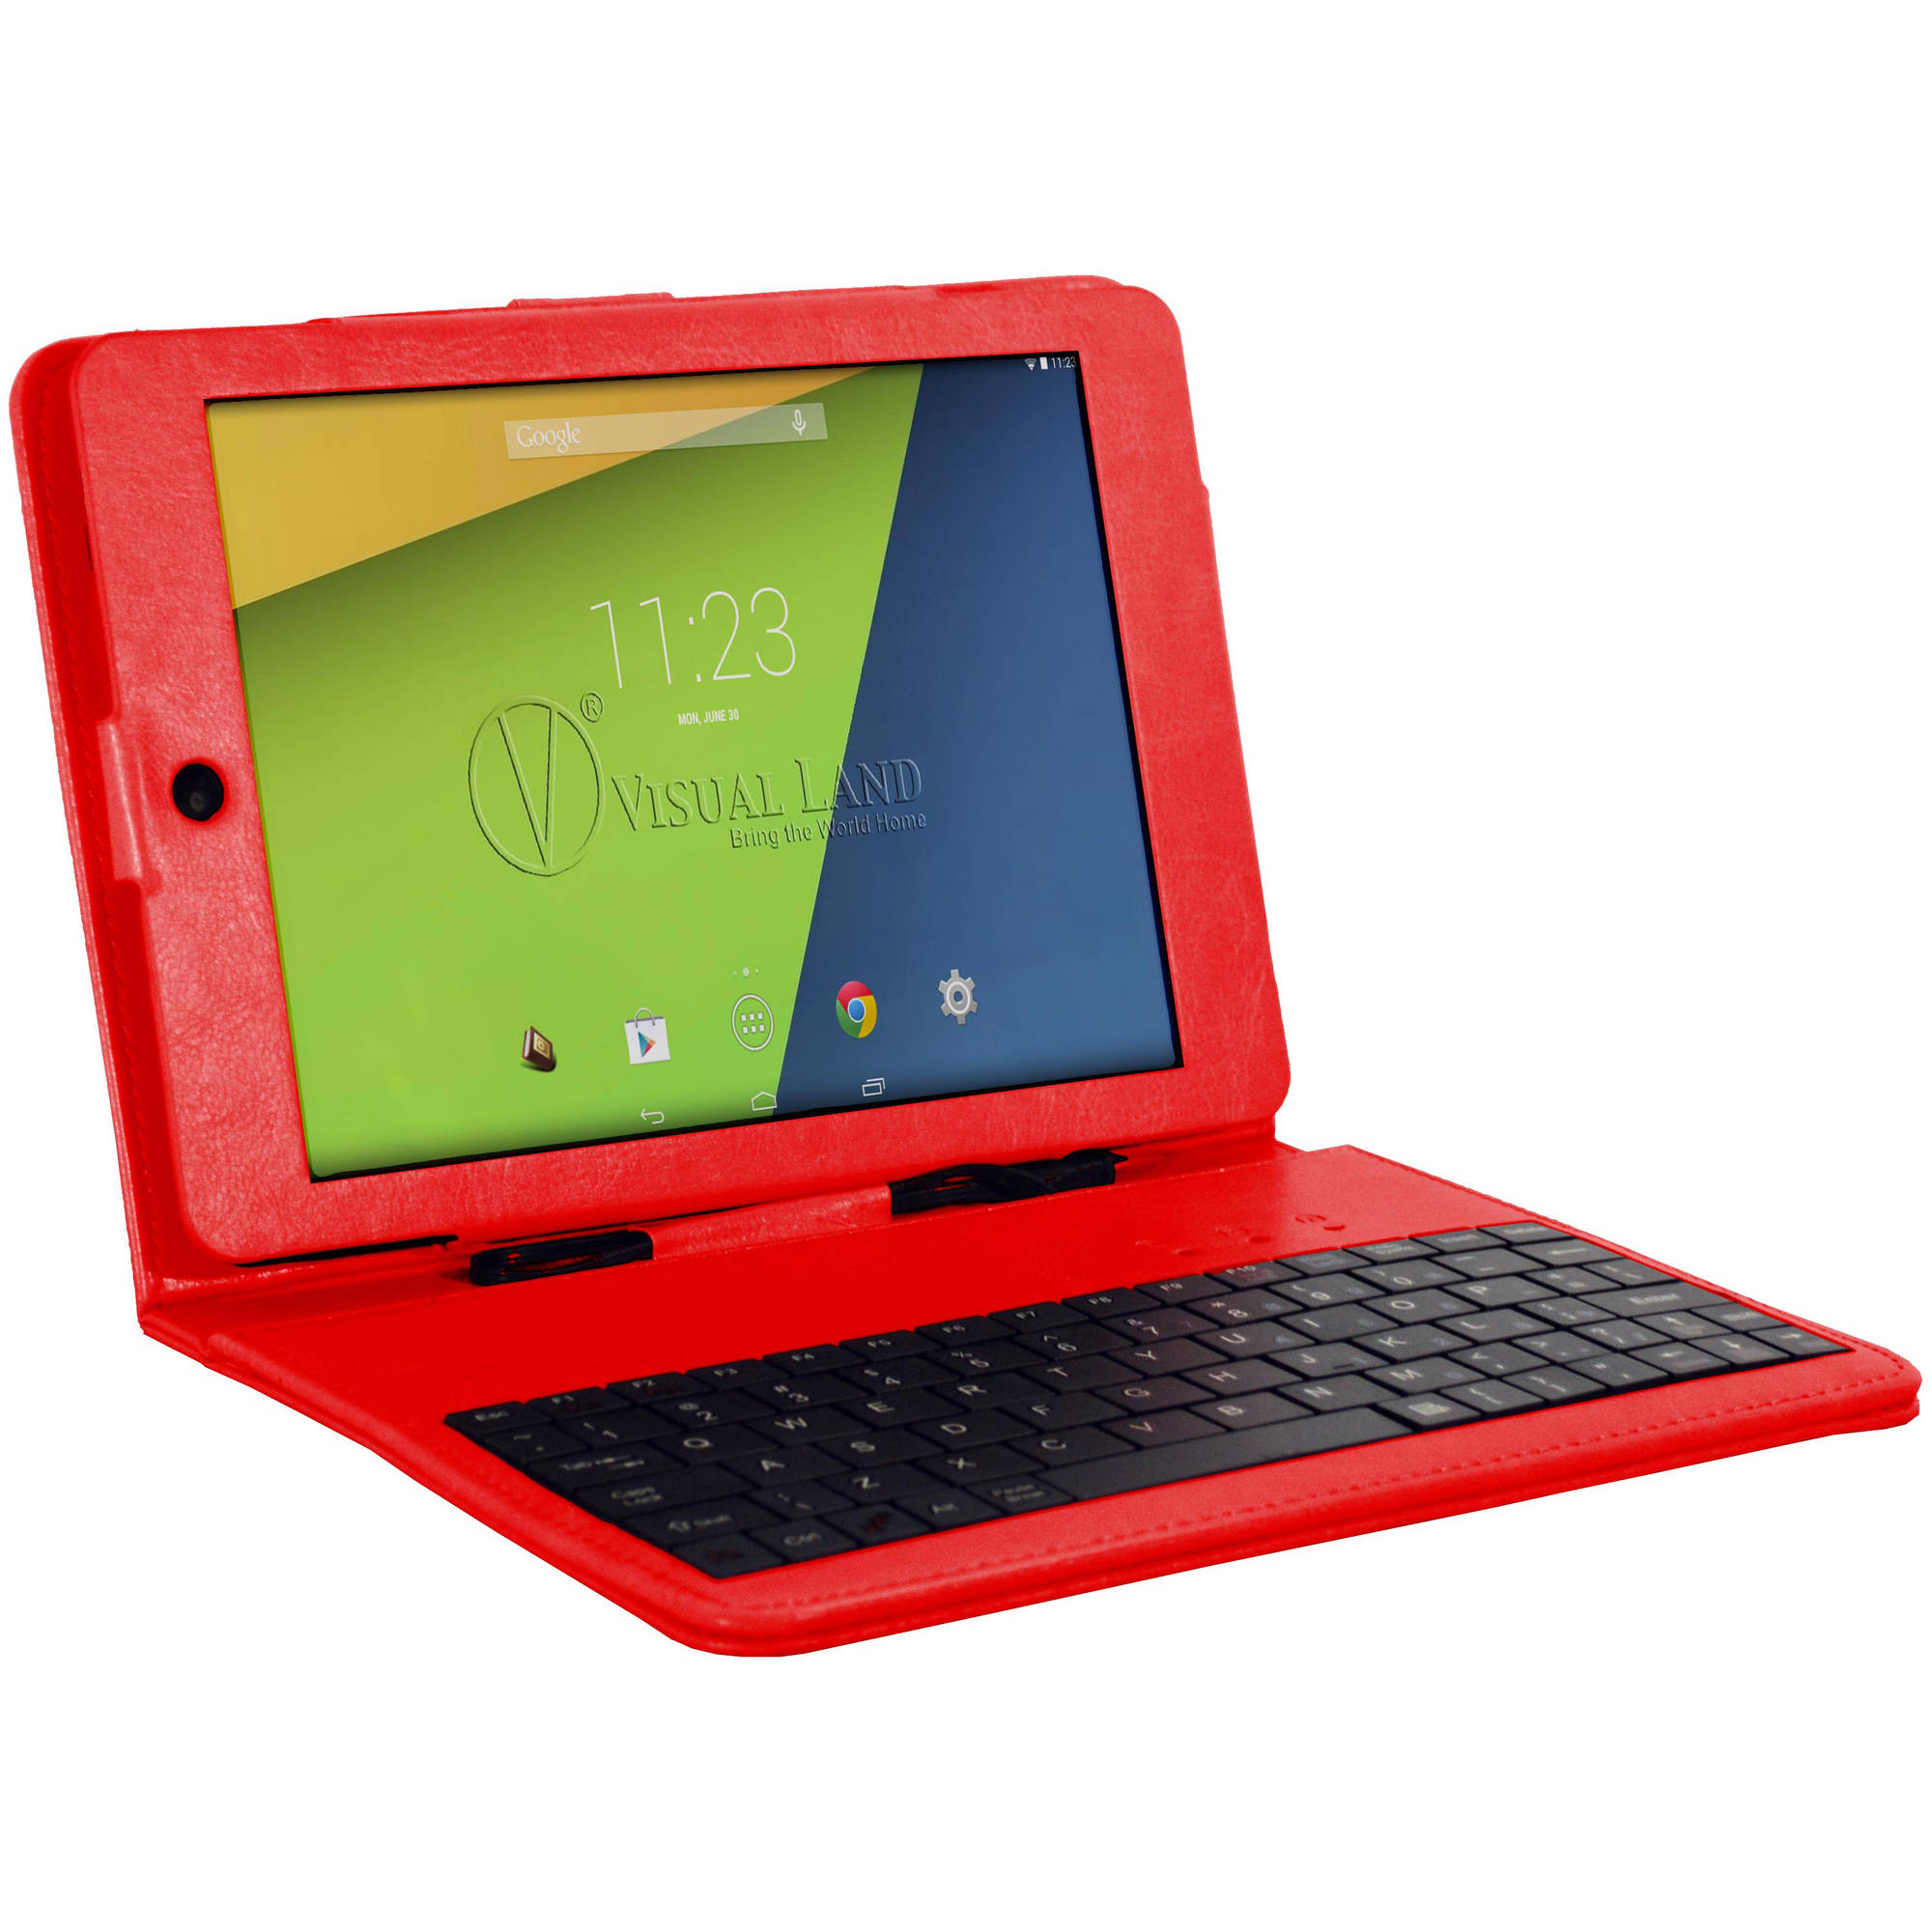 "Visual Land 8"" Tablet 8GB Quad Core includes Keyboard Case"